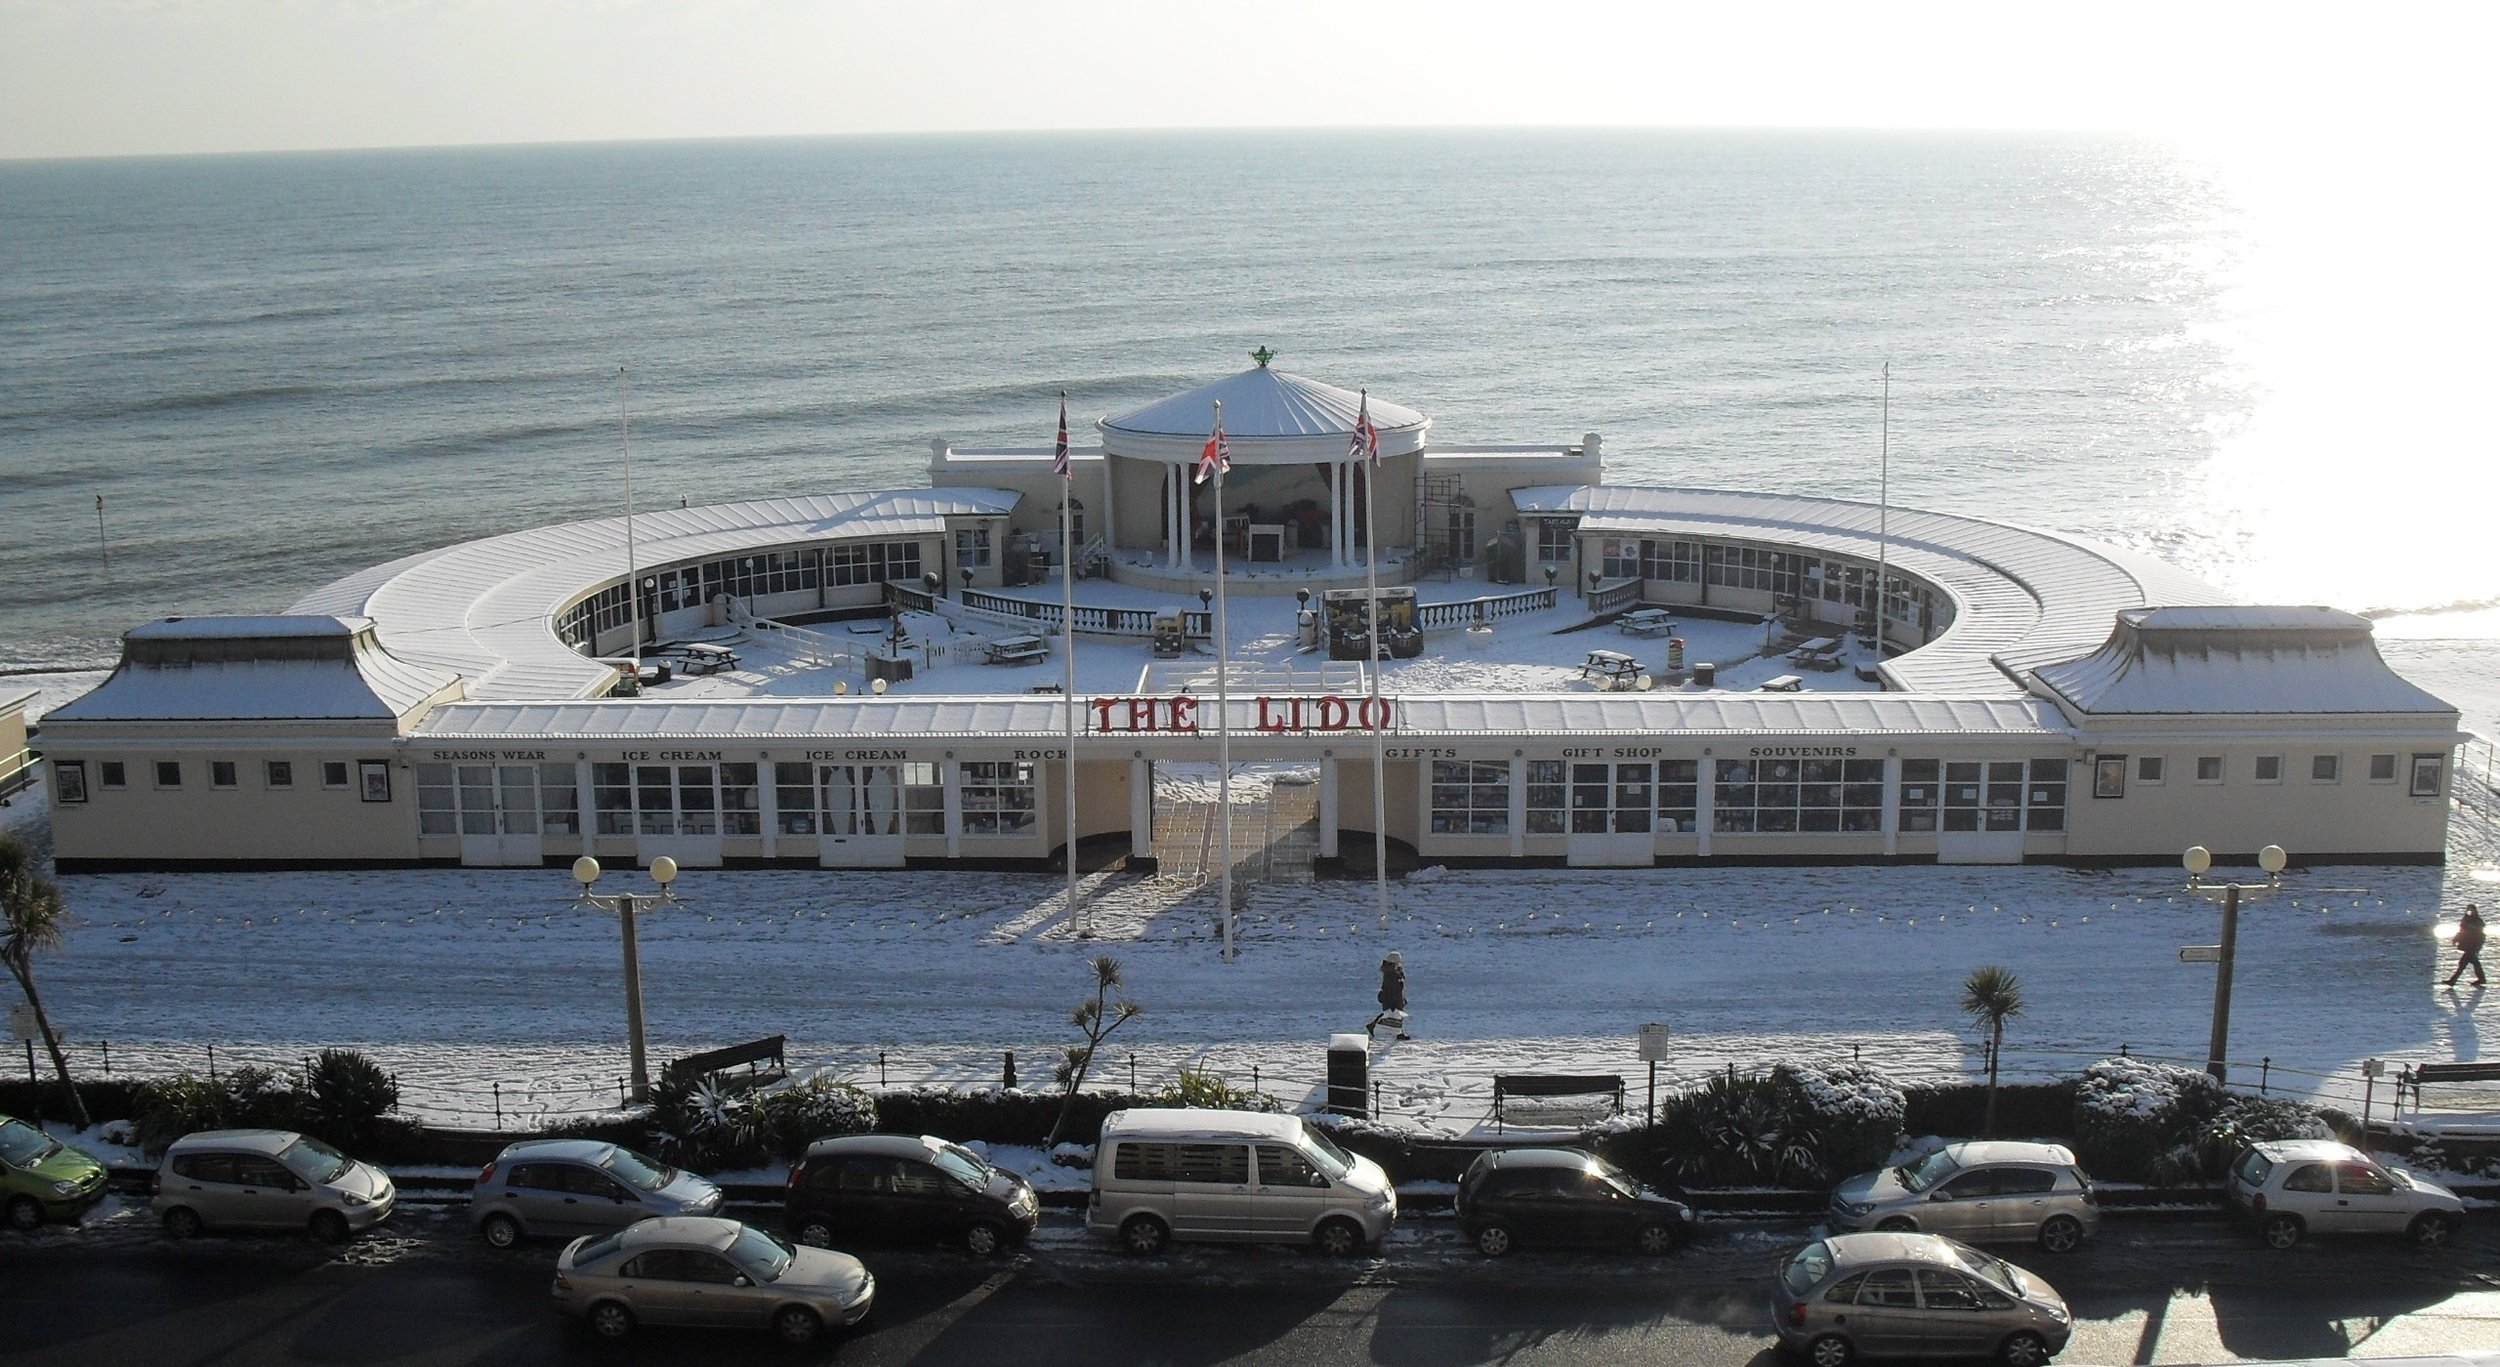 The_Lido,_Worthing_(IoE_Code_433271).JPG